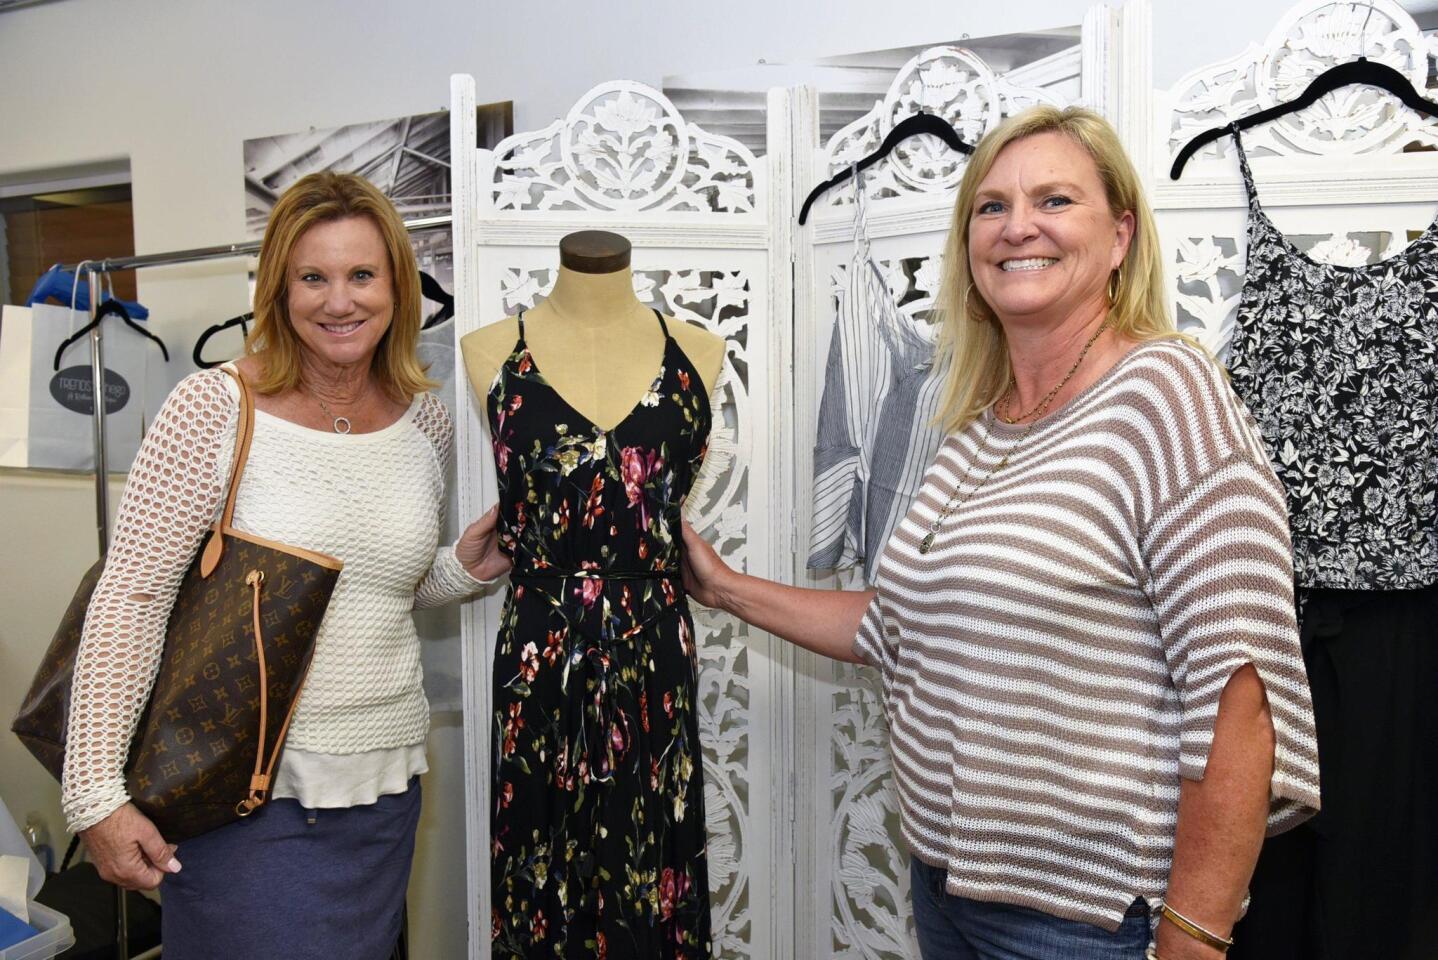 'Fashion Fiesta!' benefits Conner's Cause for Children